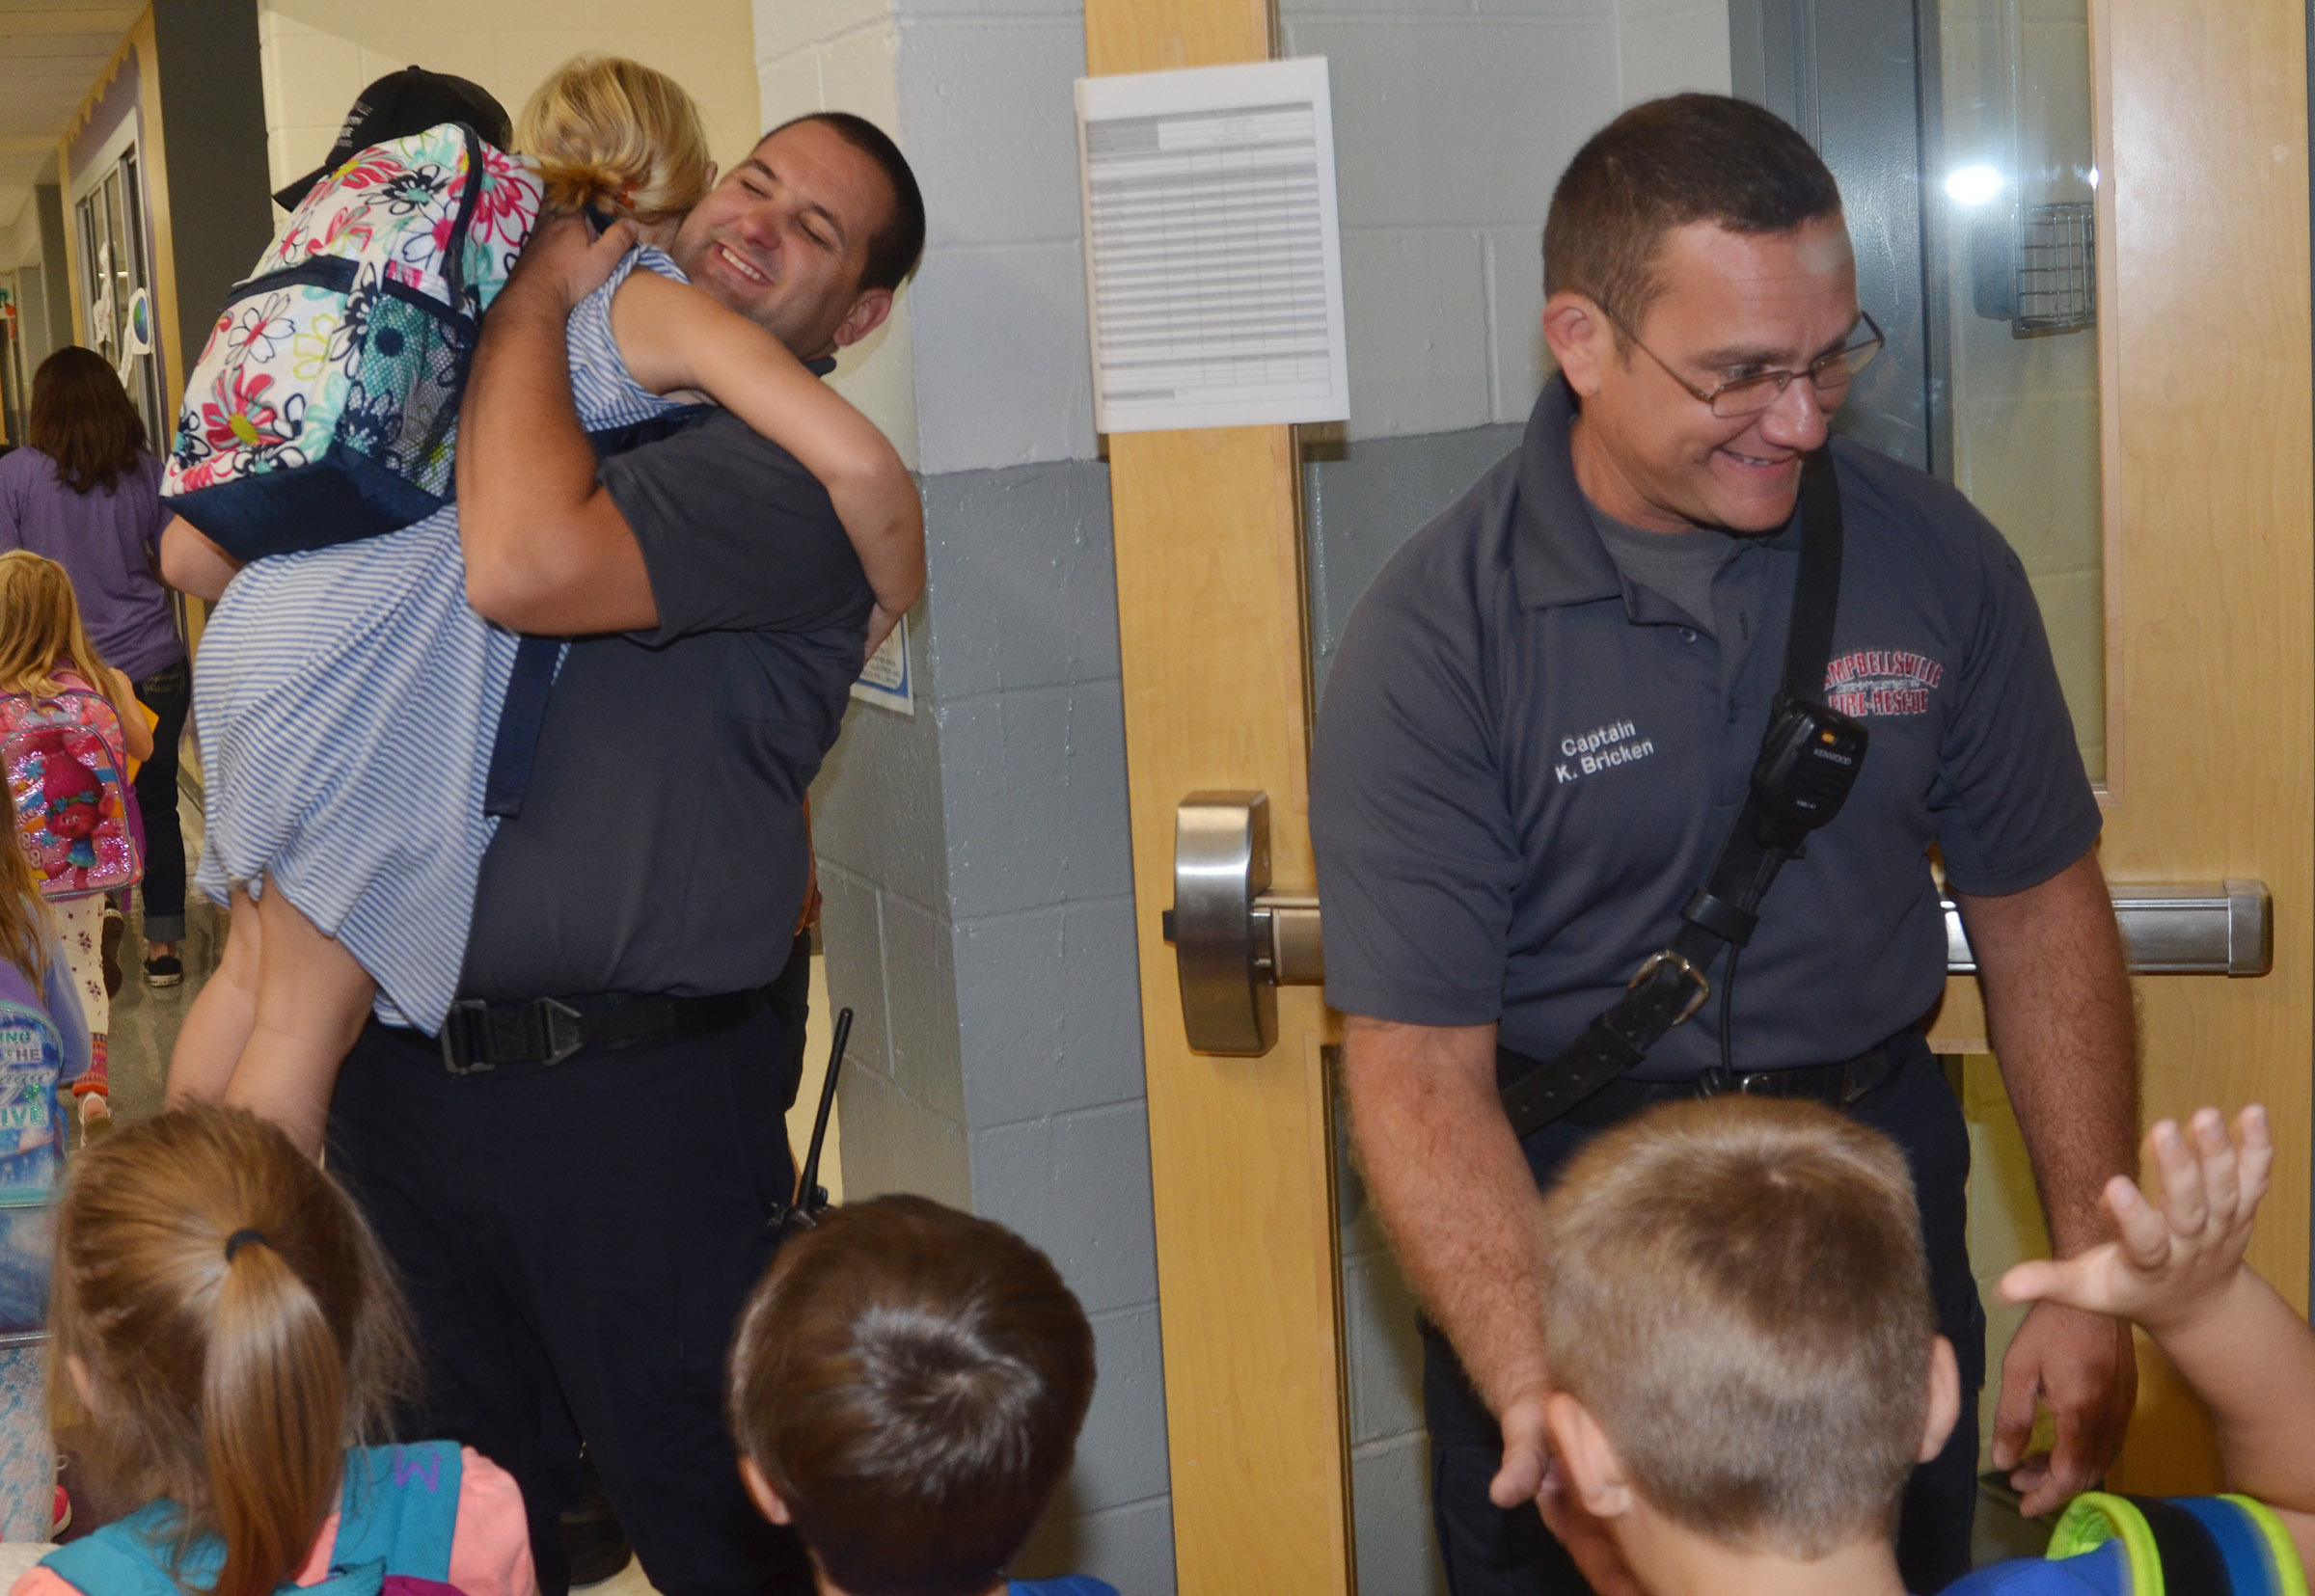 Campbellsville Fire & Rescue Captain Keith Bricken greets CES students while firefighter Alex Johnson picks up and hugs kindergartener Remi Petett.